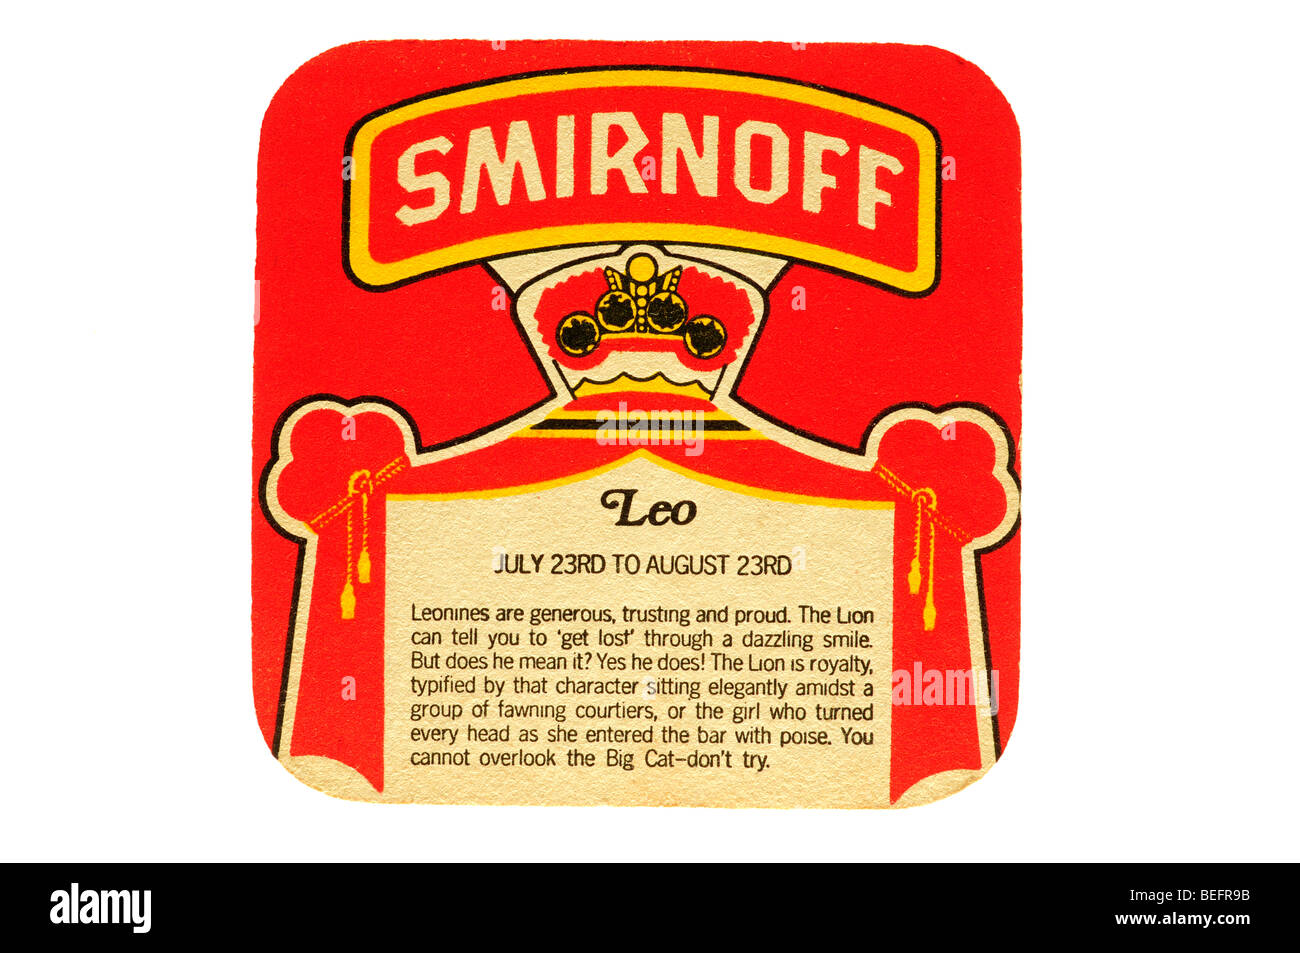 smirnoff leo july 23rd to august 23rd leonines are generous trusting and proud the lion can tell you to get lost - Stock Image